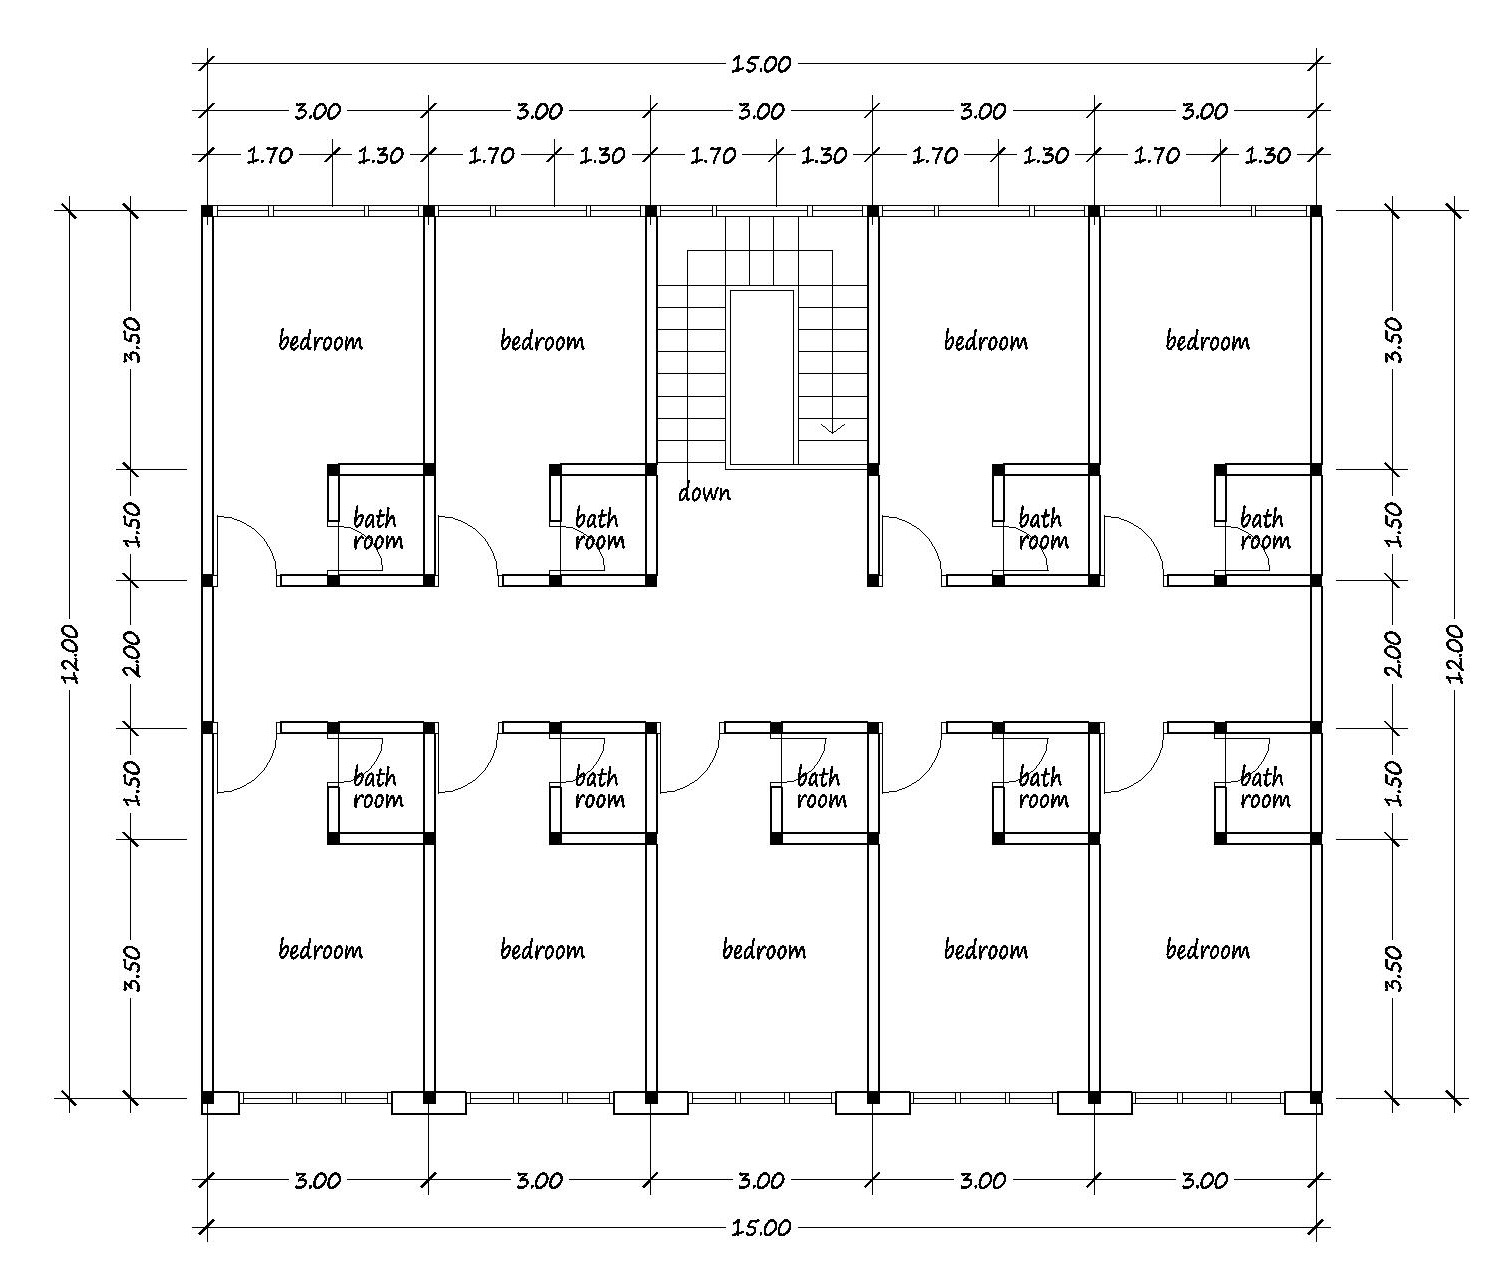 House plans for you plans image design and about house for Houde plans